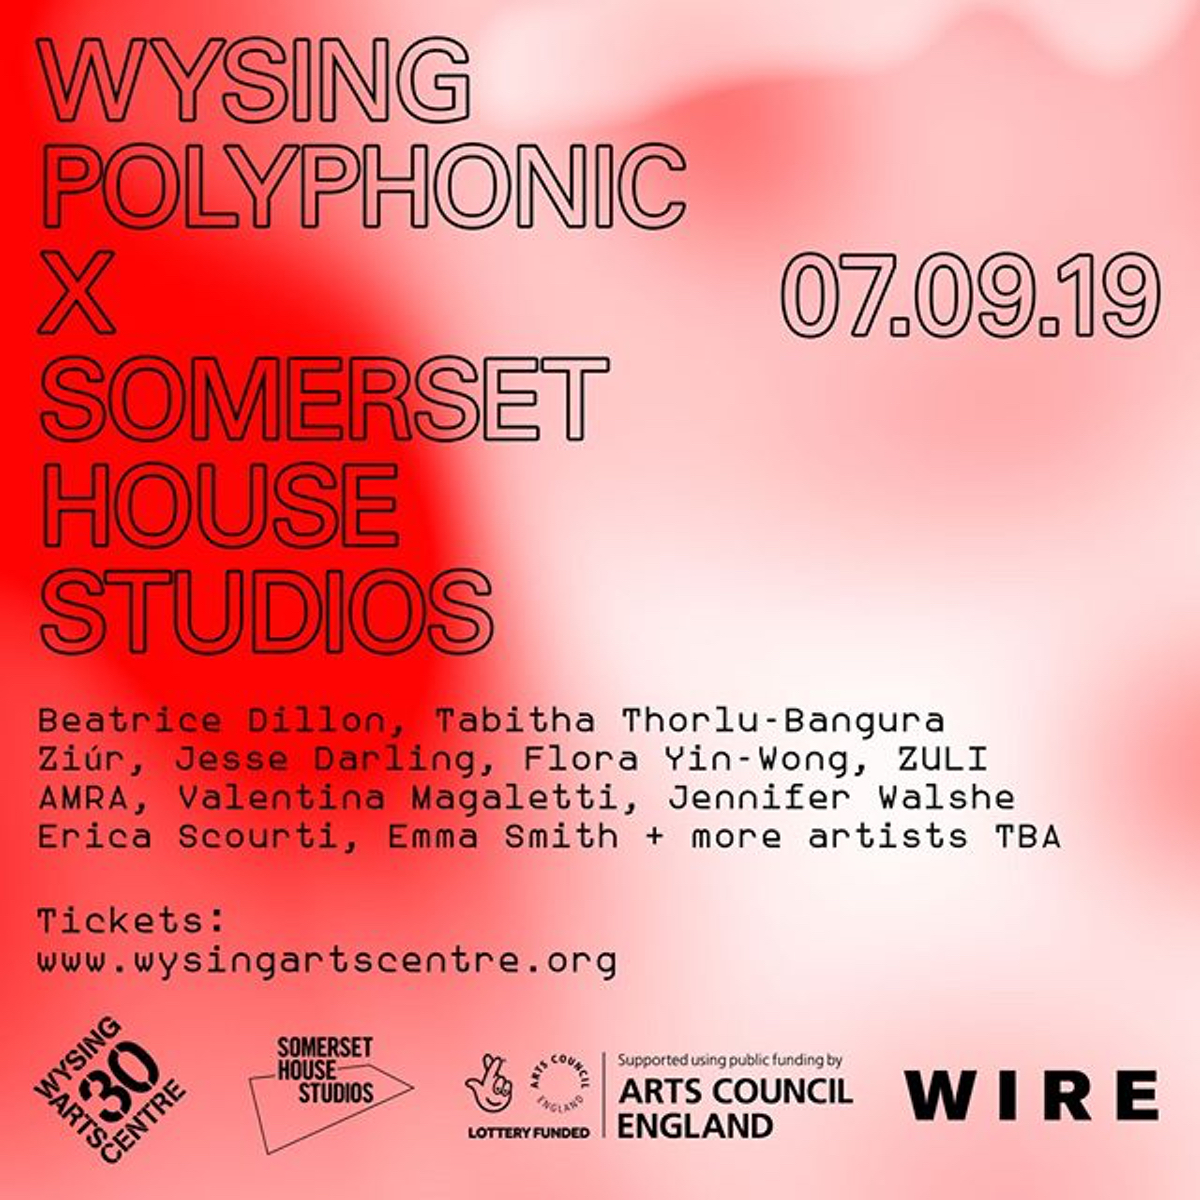 Beatrice Dillion, Ziúr and Zuli confirmed for Wysing Polyphonic 2019